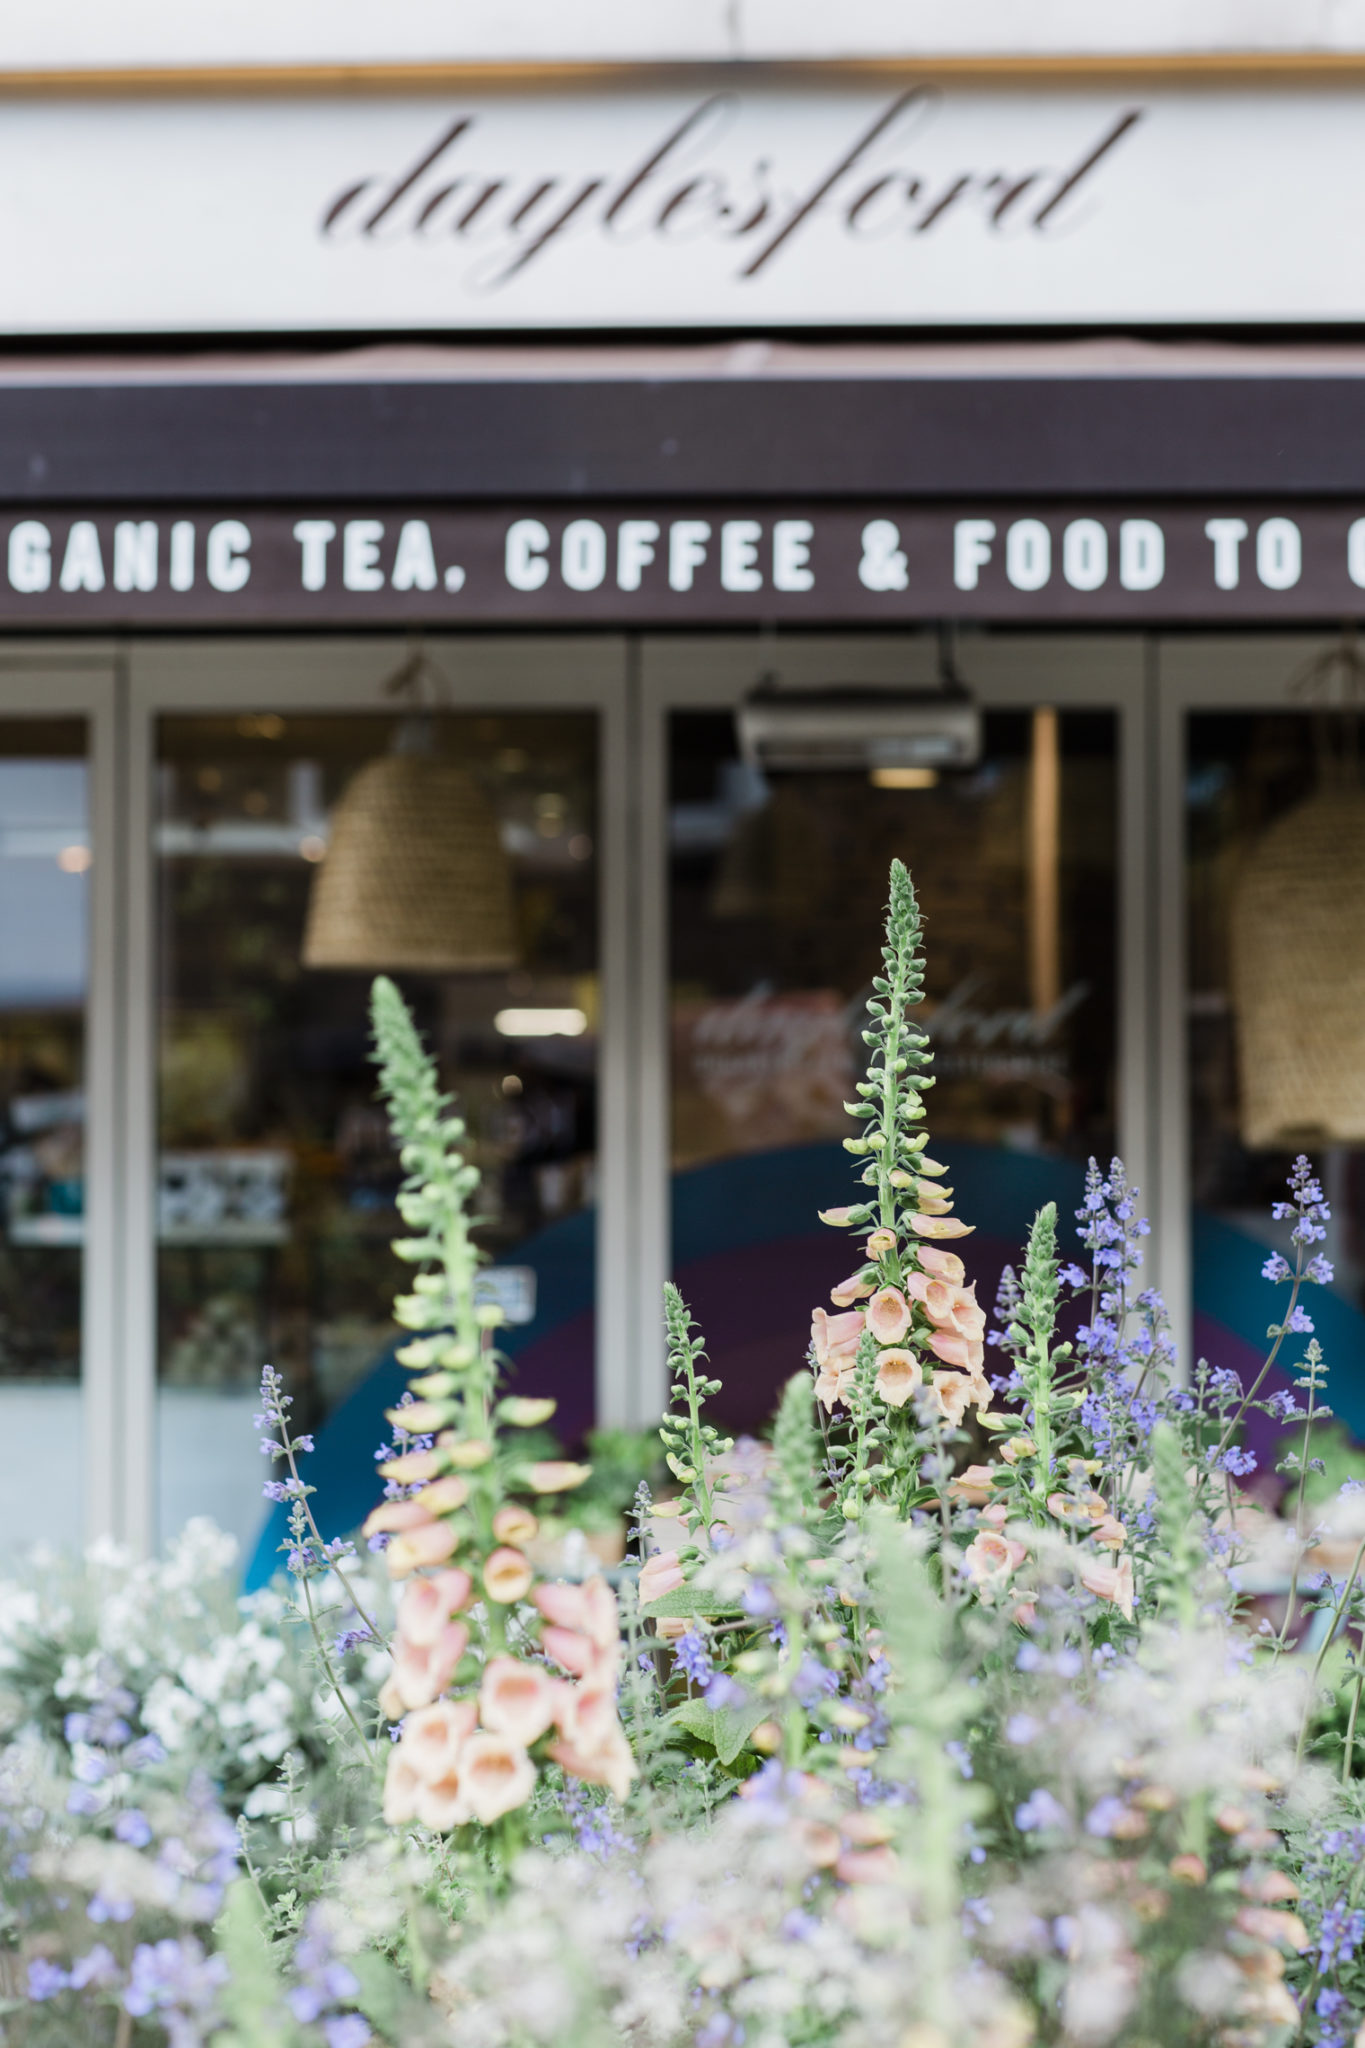 Daylesford Organic at Pimlico in London with planting by JamJar Flowers